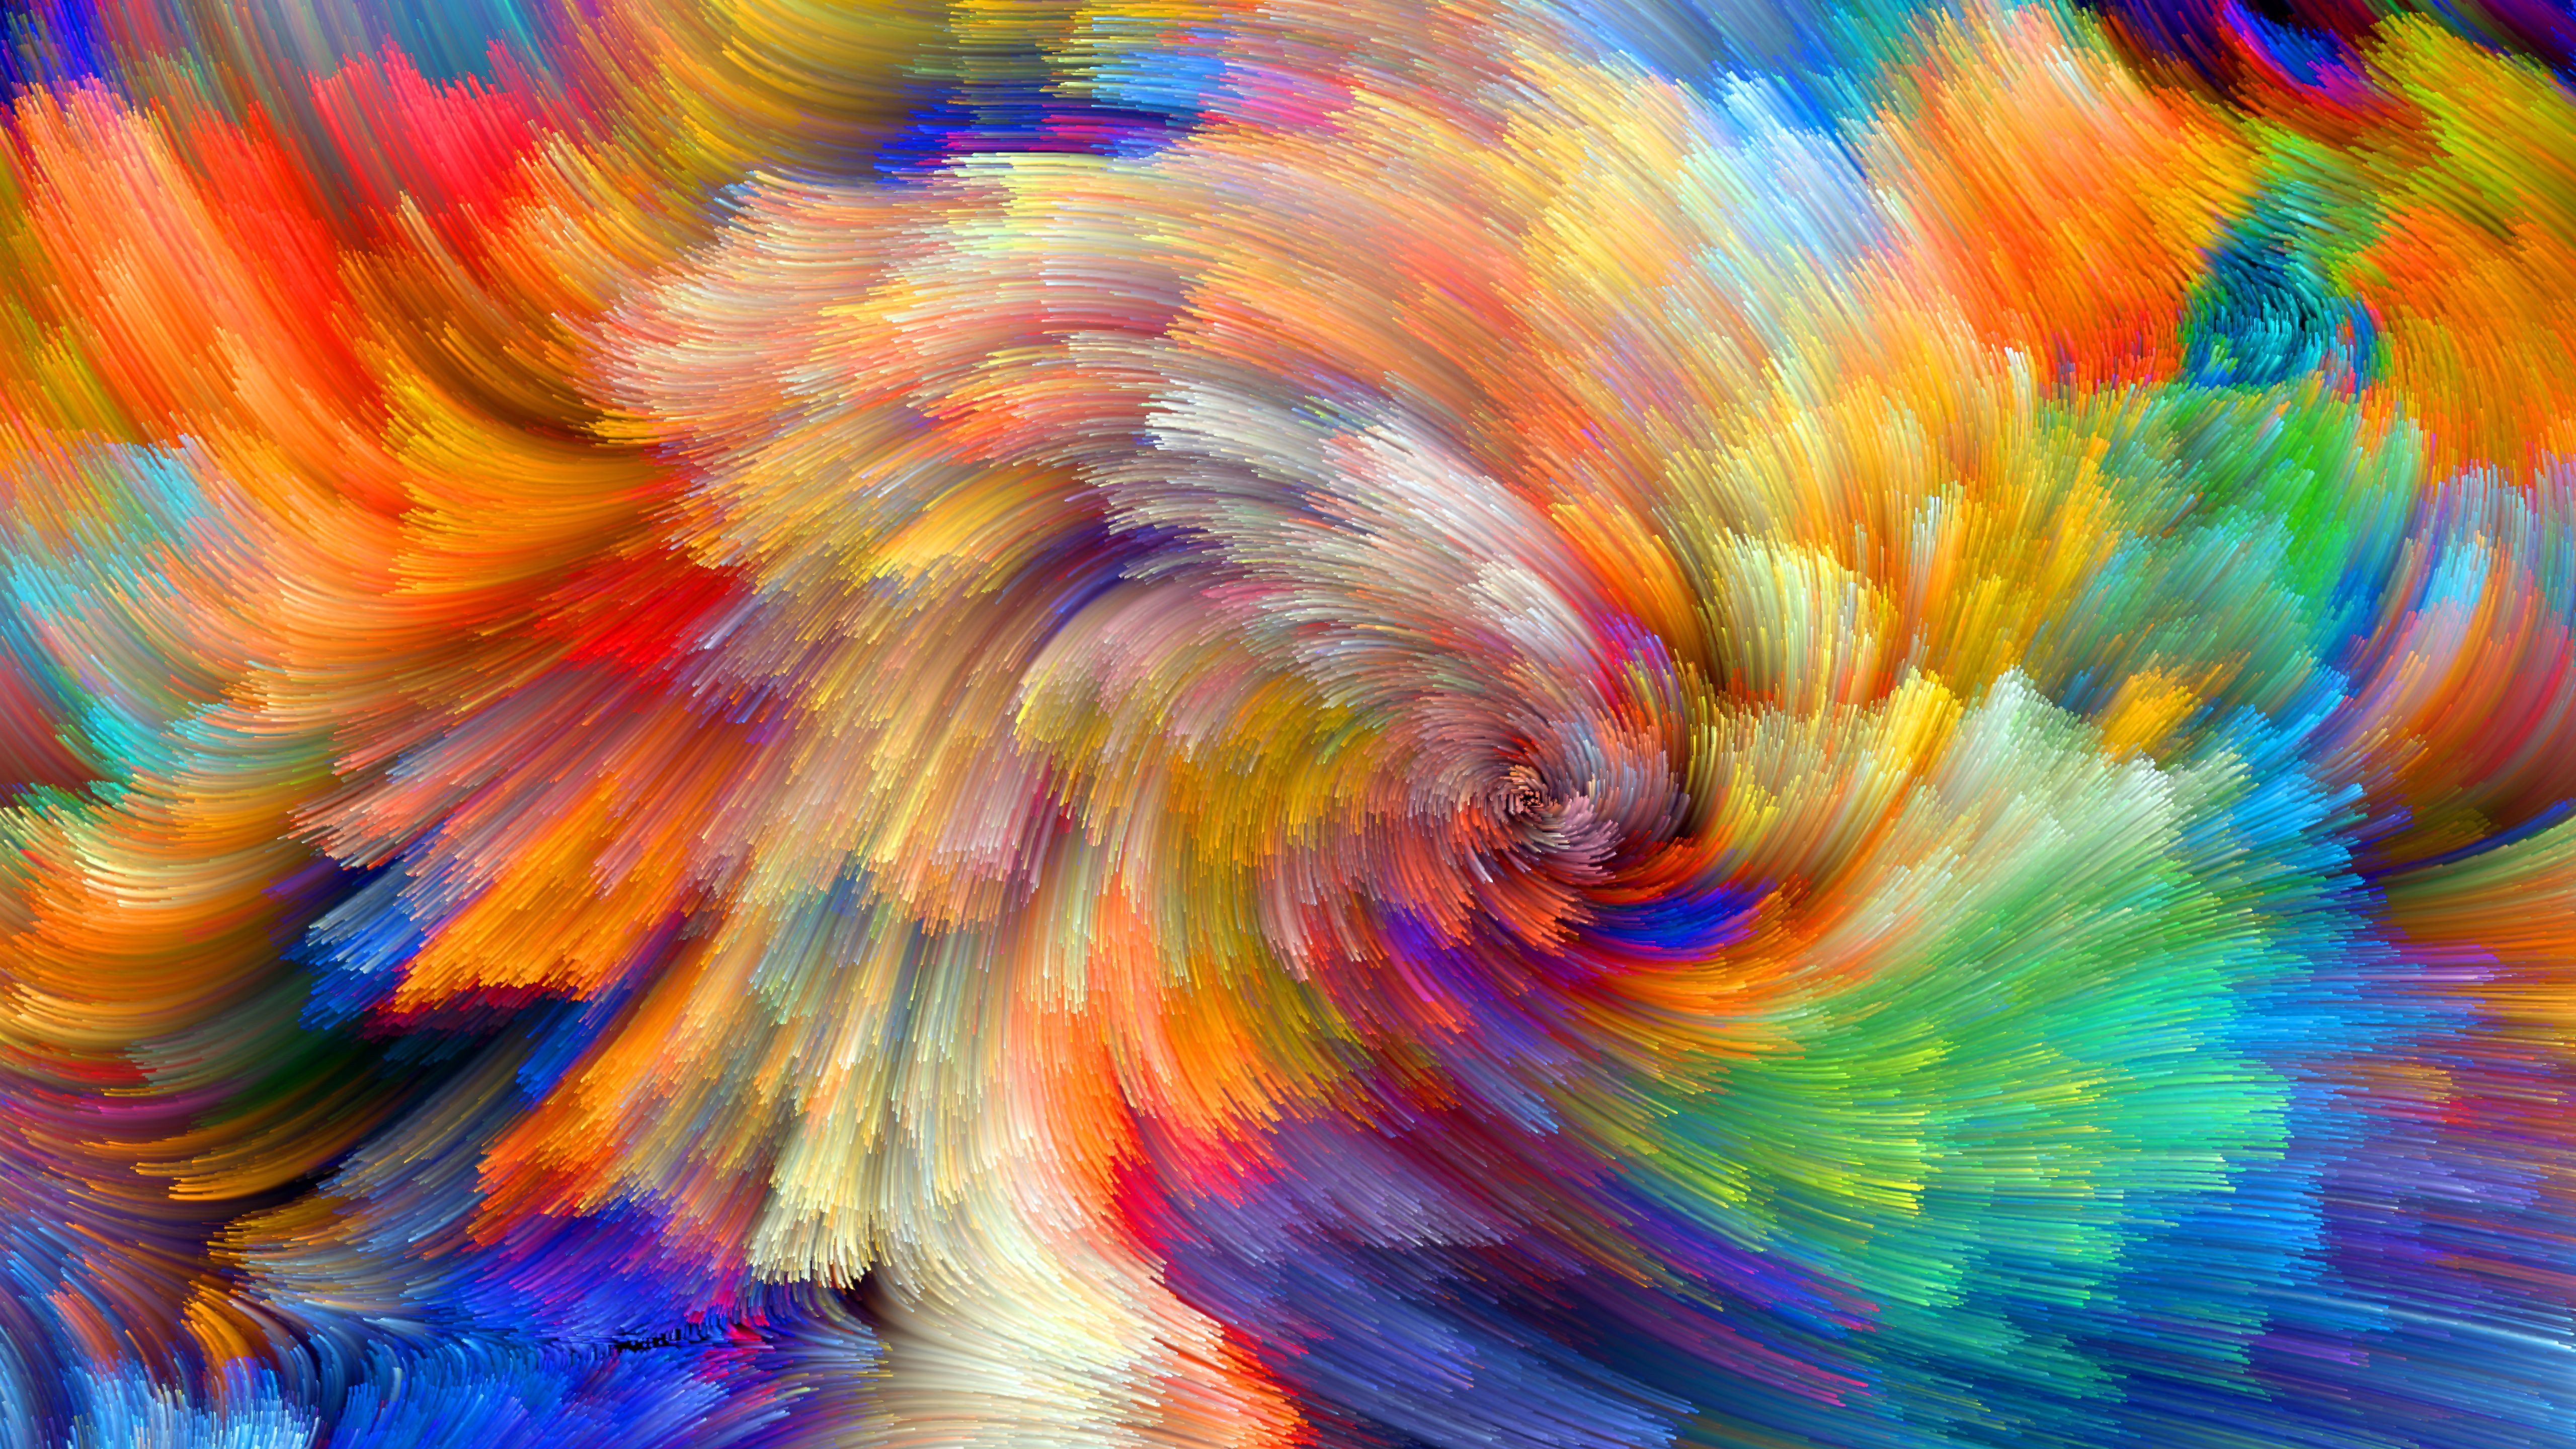 Vibrant Wallpapers   Top Vibrant Backgrounds   WallpaperAccess 5120x2880